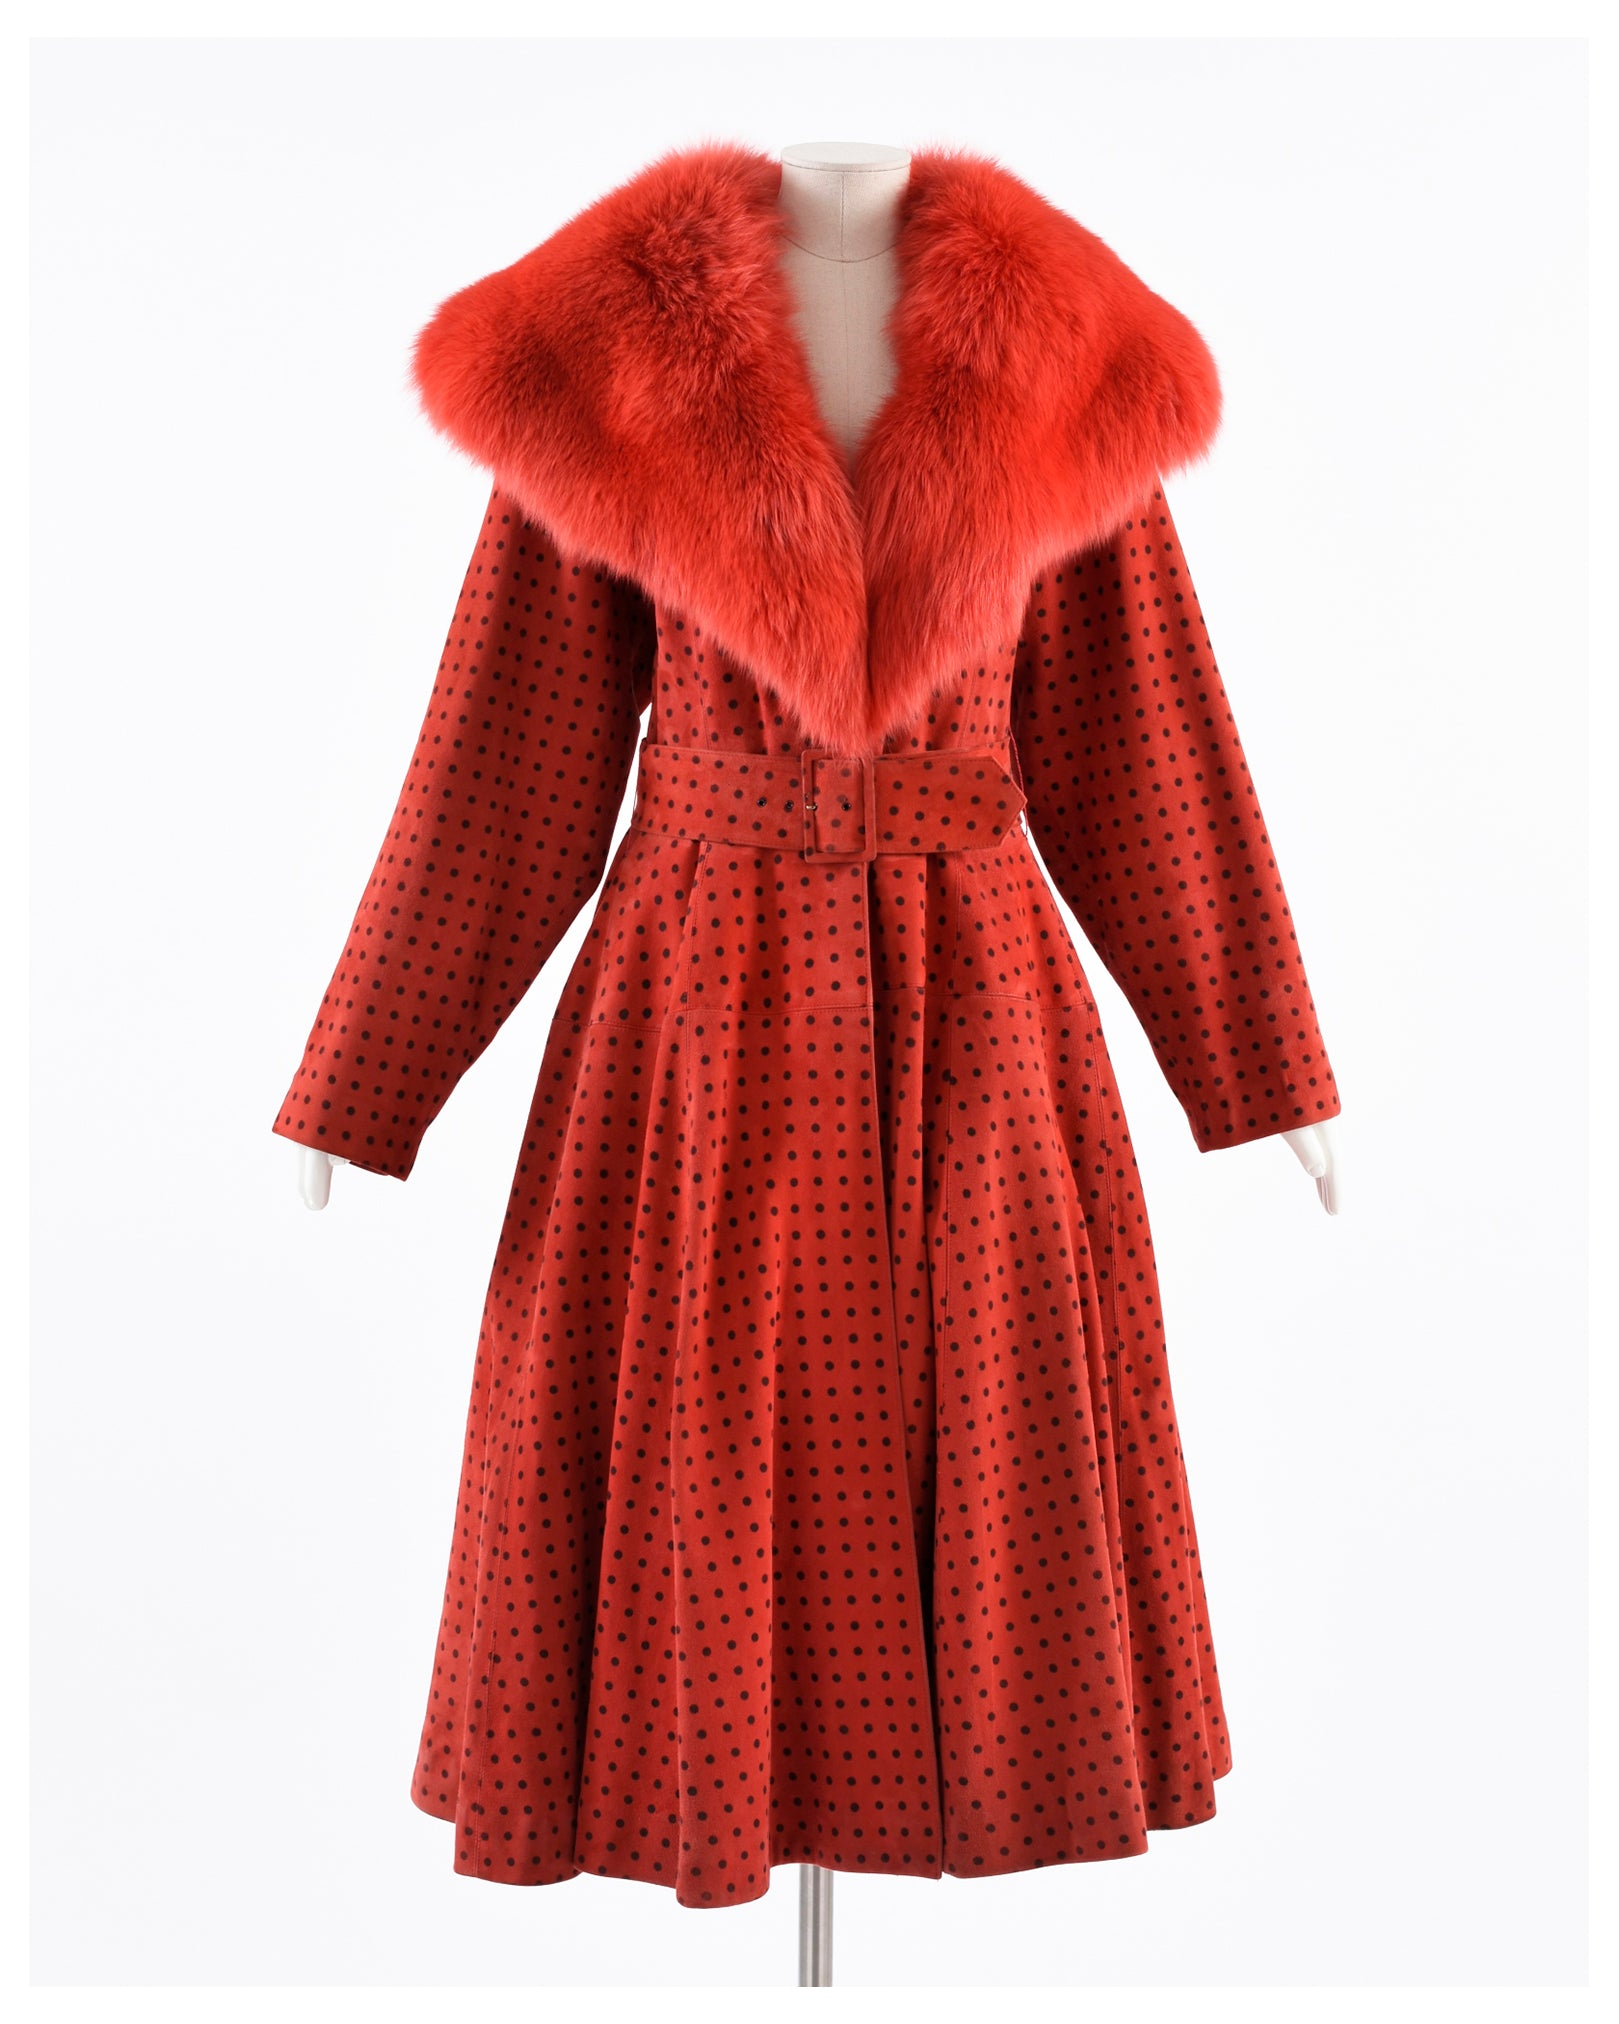 Carlo Tivioli 1980s Suede and Fur Swing Overcoat and Large Brim Hat-Cavalli e Nastri